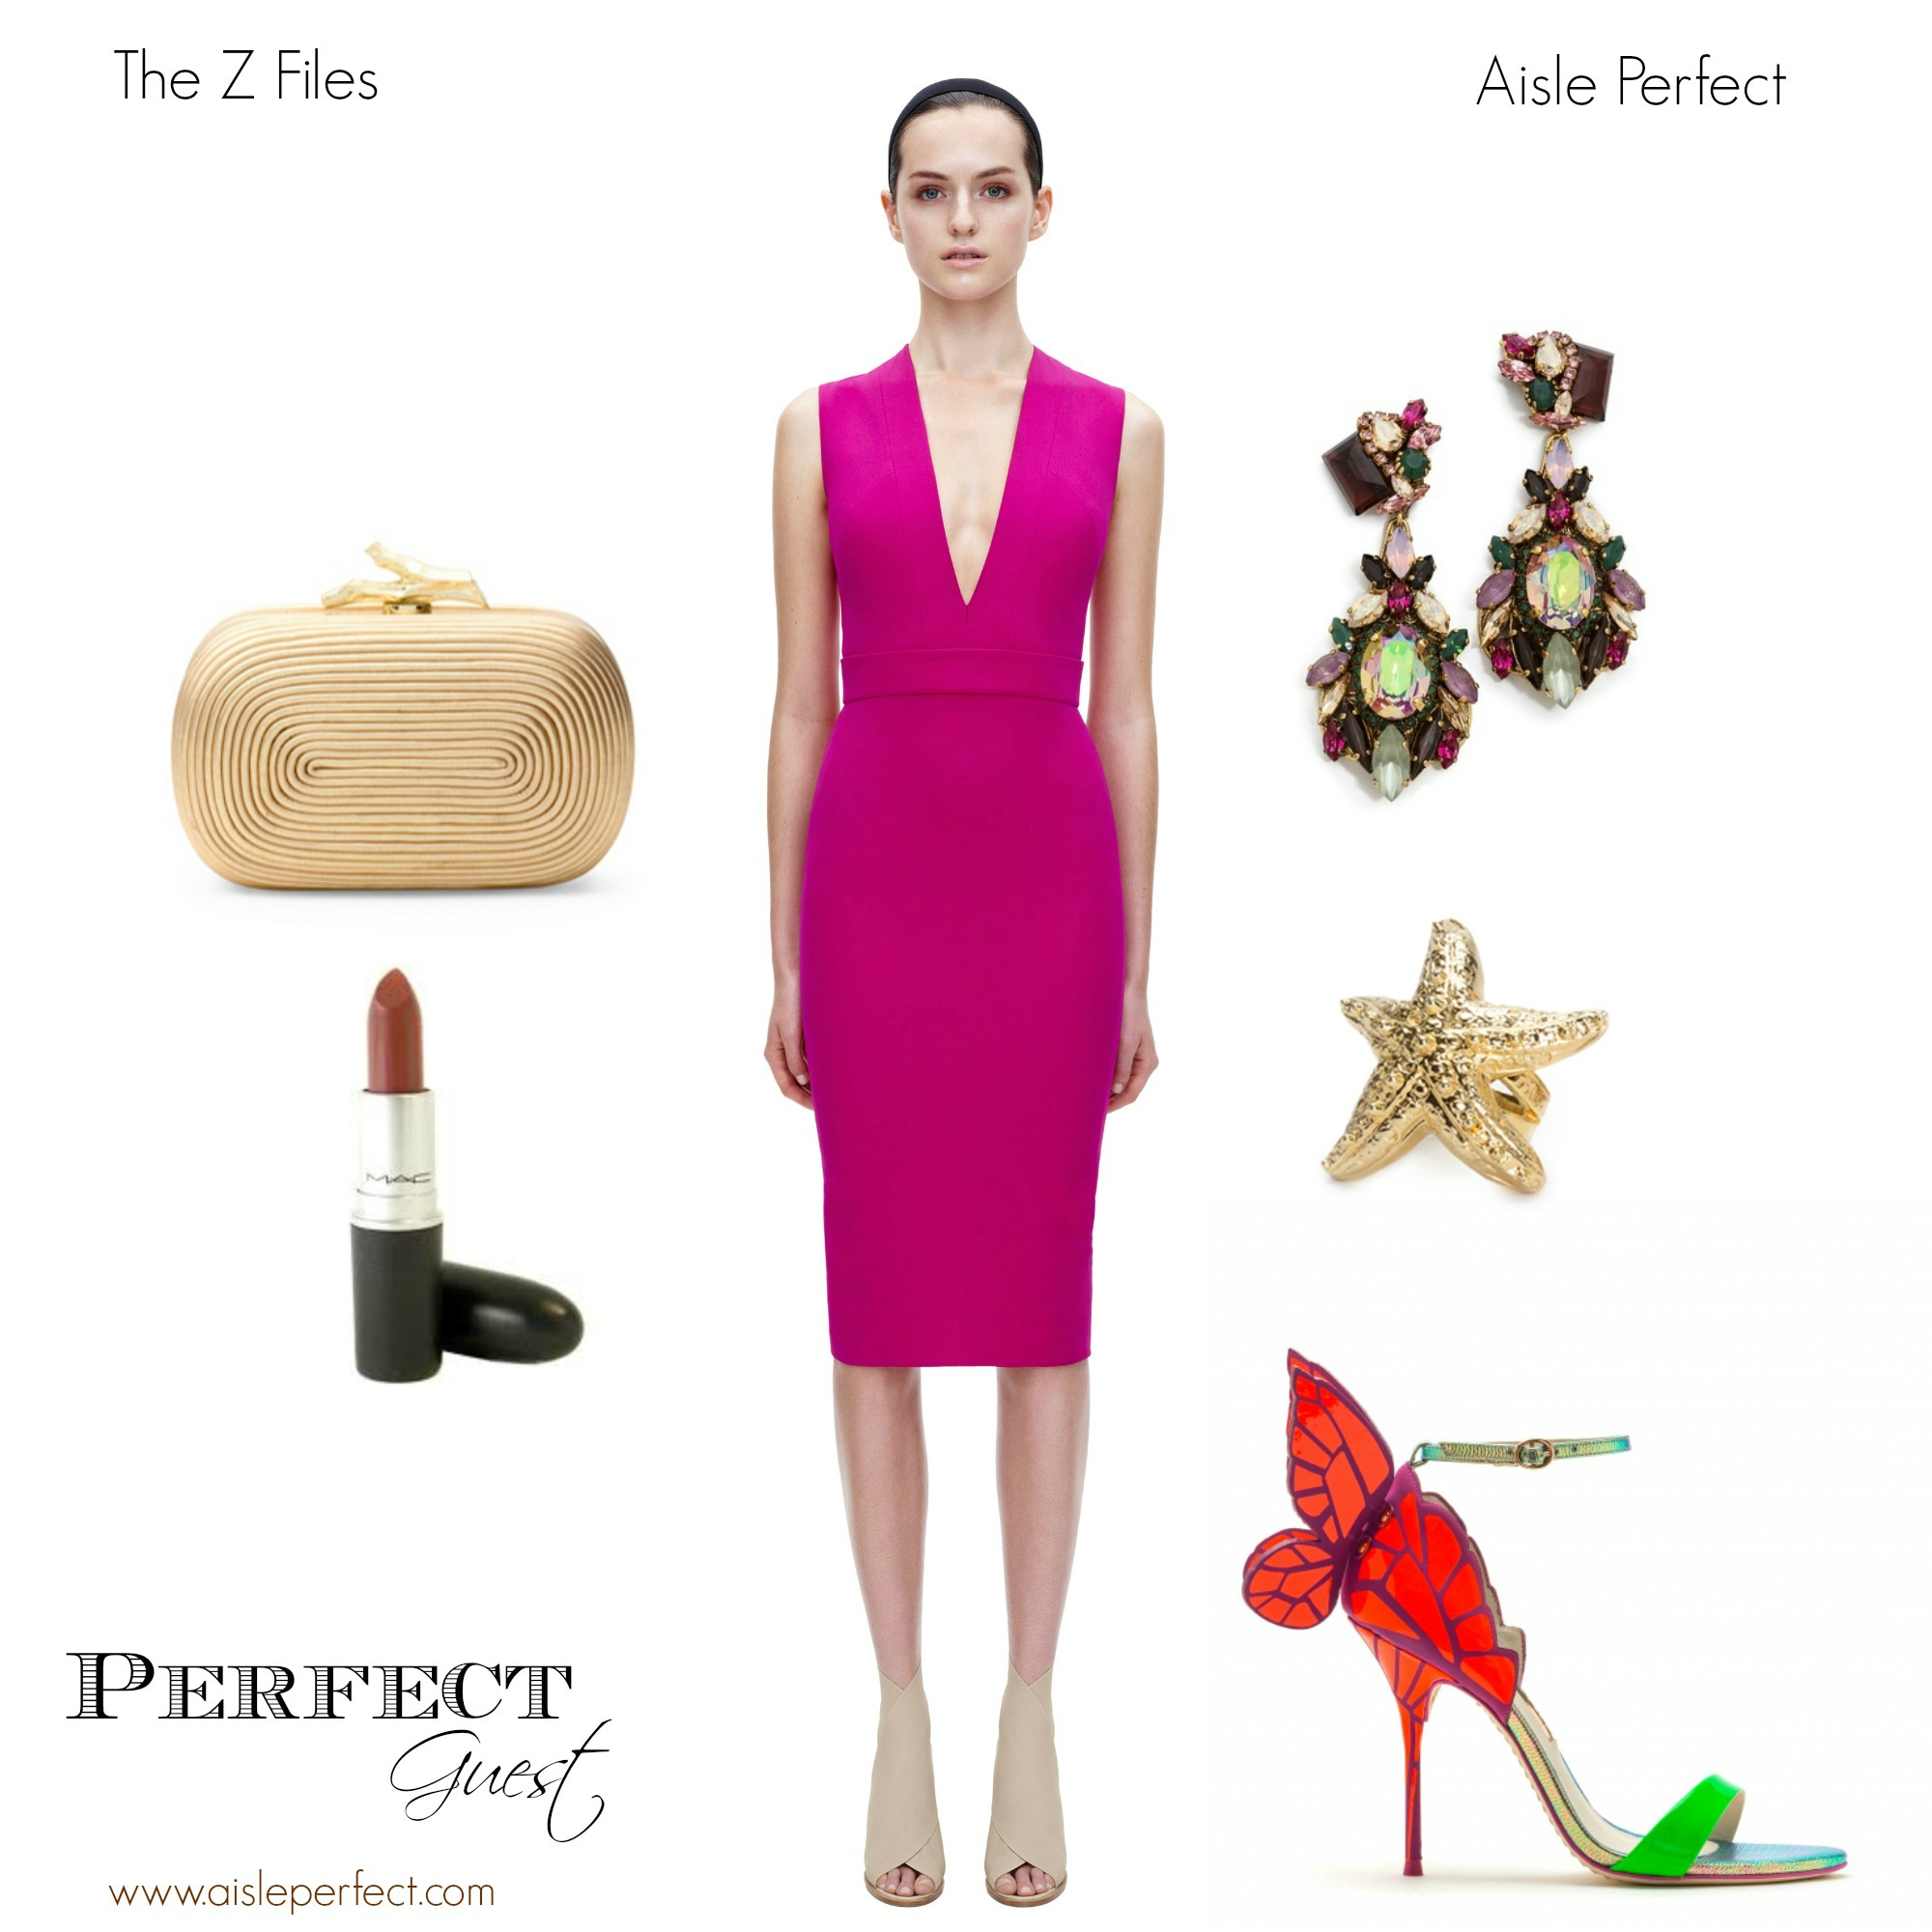 cc5f608011c Perfect Wedding Guest Outfit The Z Files on Aisle Perfect